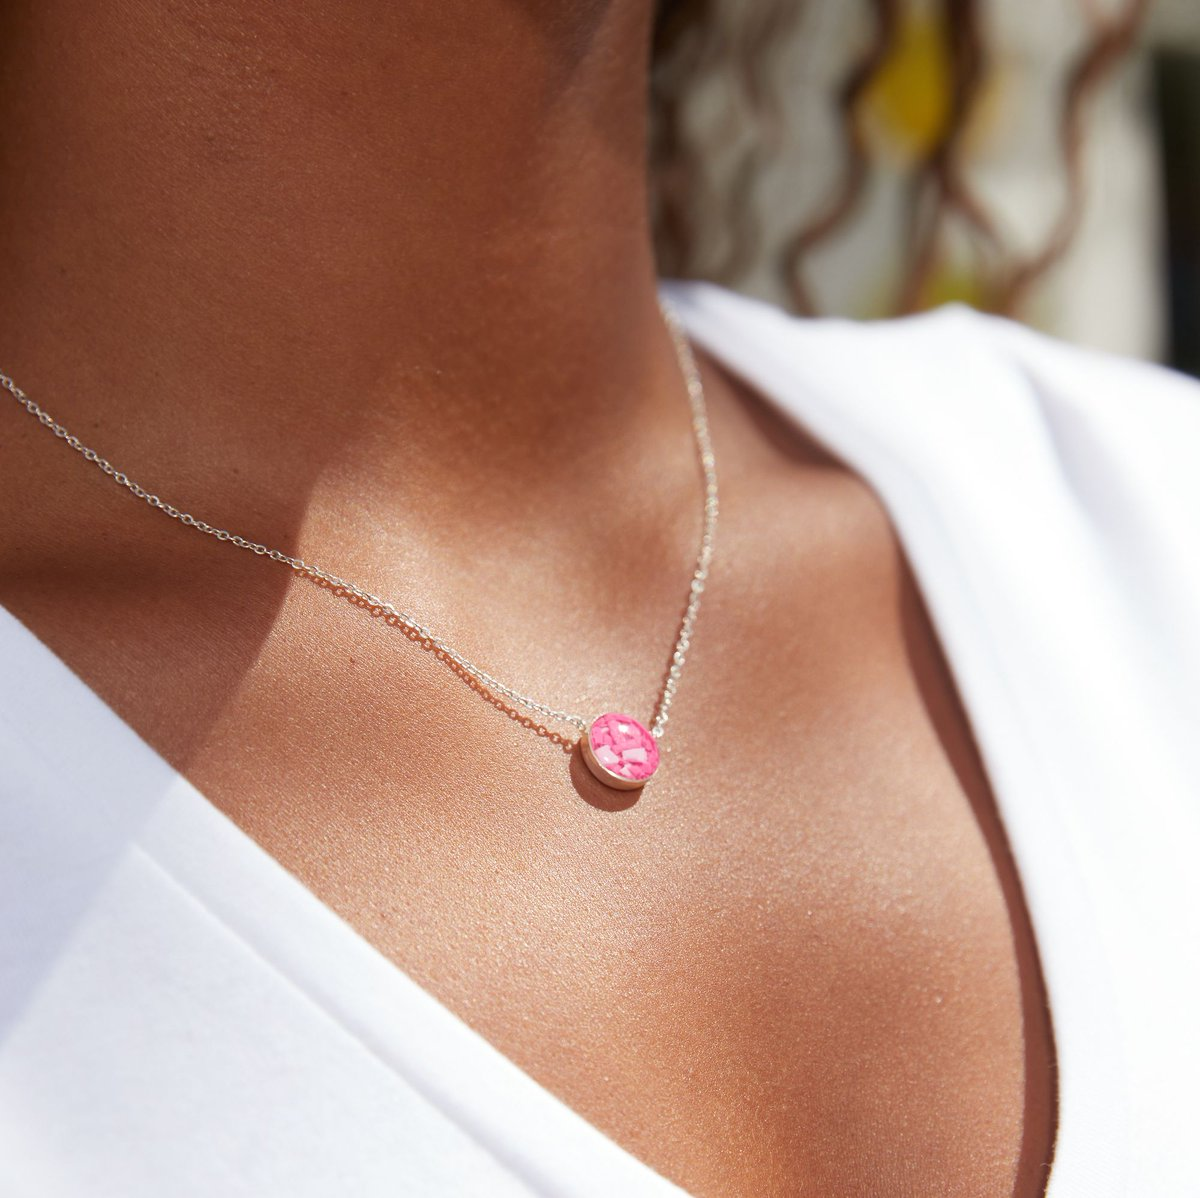 Have you seen our new Pink Sterling Silver Necklace + Earrings made with 4ocean Plastic from the beaches of Florida? ✨ 🐚 We're always looking for ways to give ocean trash a brand new purpose. Visit bit.ly/2YOZM7m to get yours!